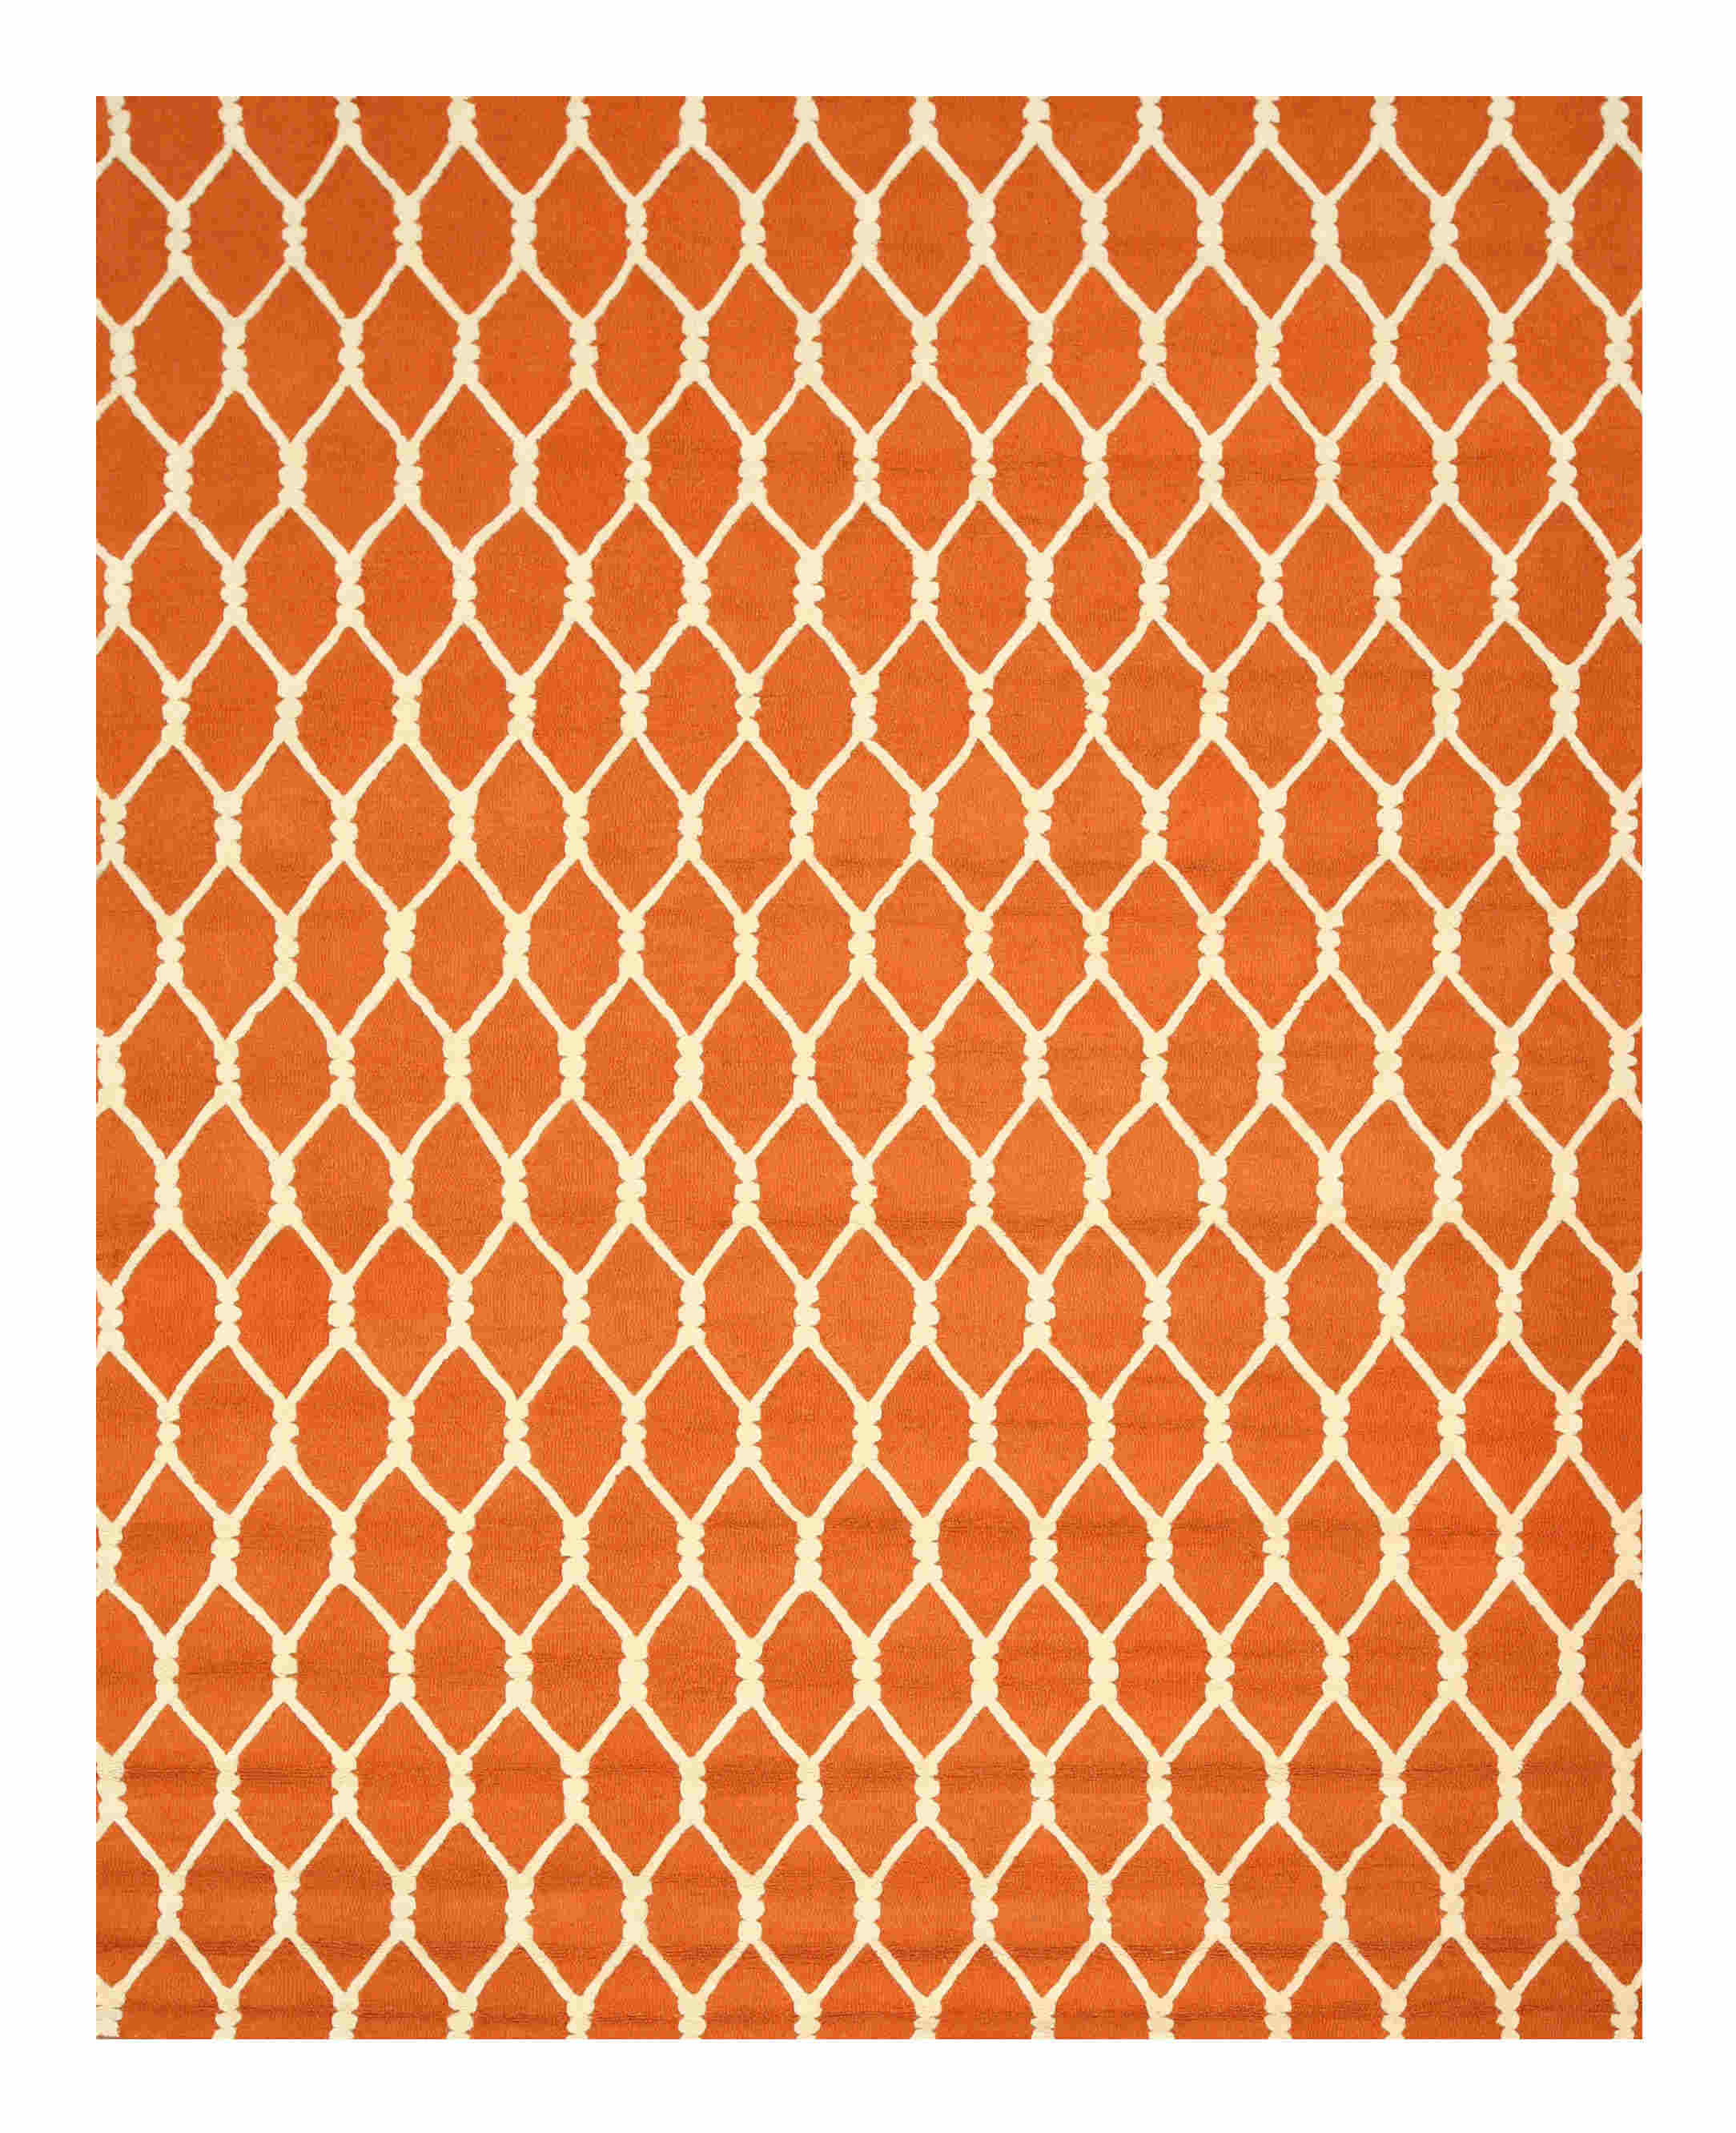 Eorc Vc1001or Orange Hand Tufted Wool Chain-link Rug